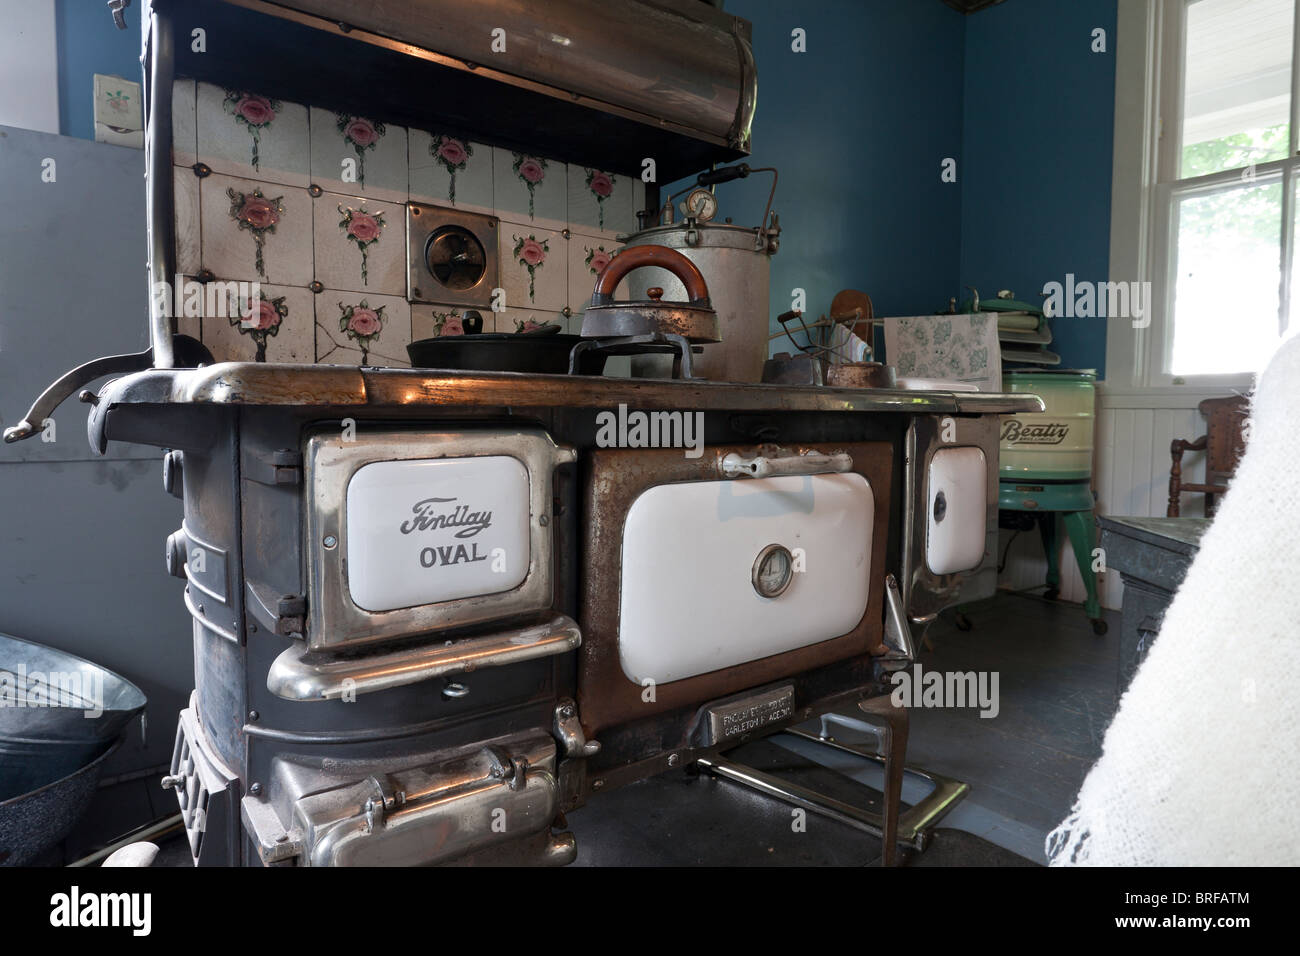 Old Findlay Oval kitchen stove. Findlay Oval Stove manufactured Findlay Bros. Co. Ltd. - Stock Image